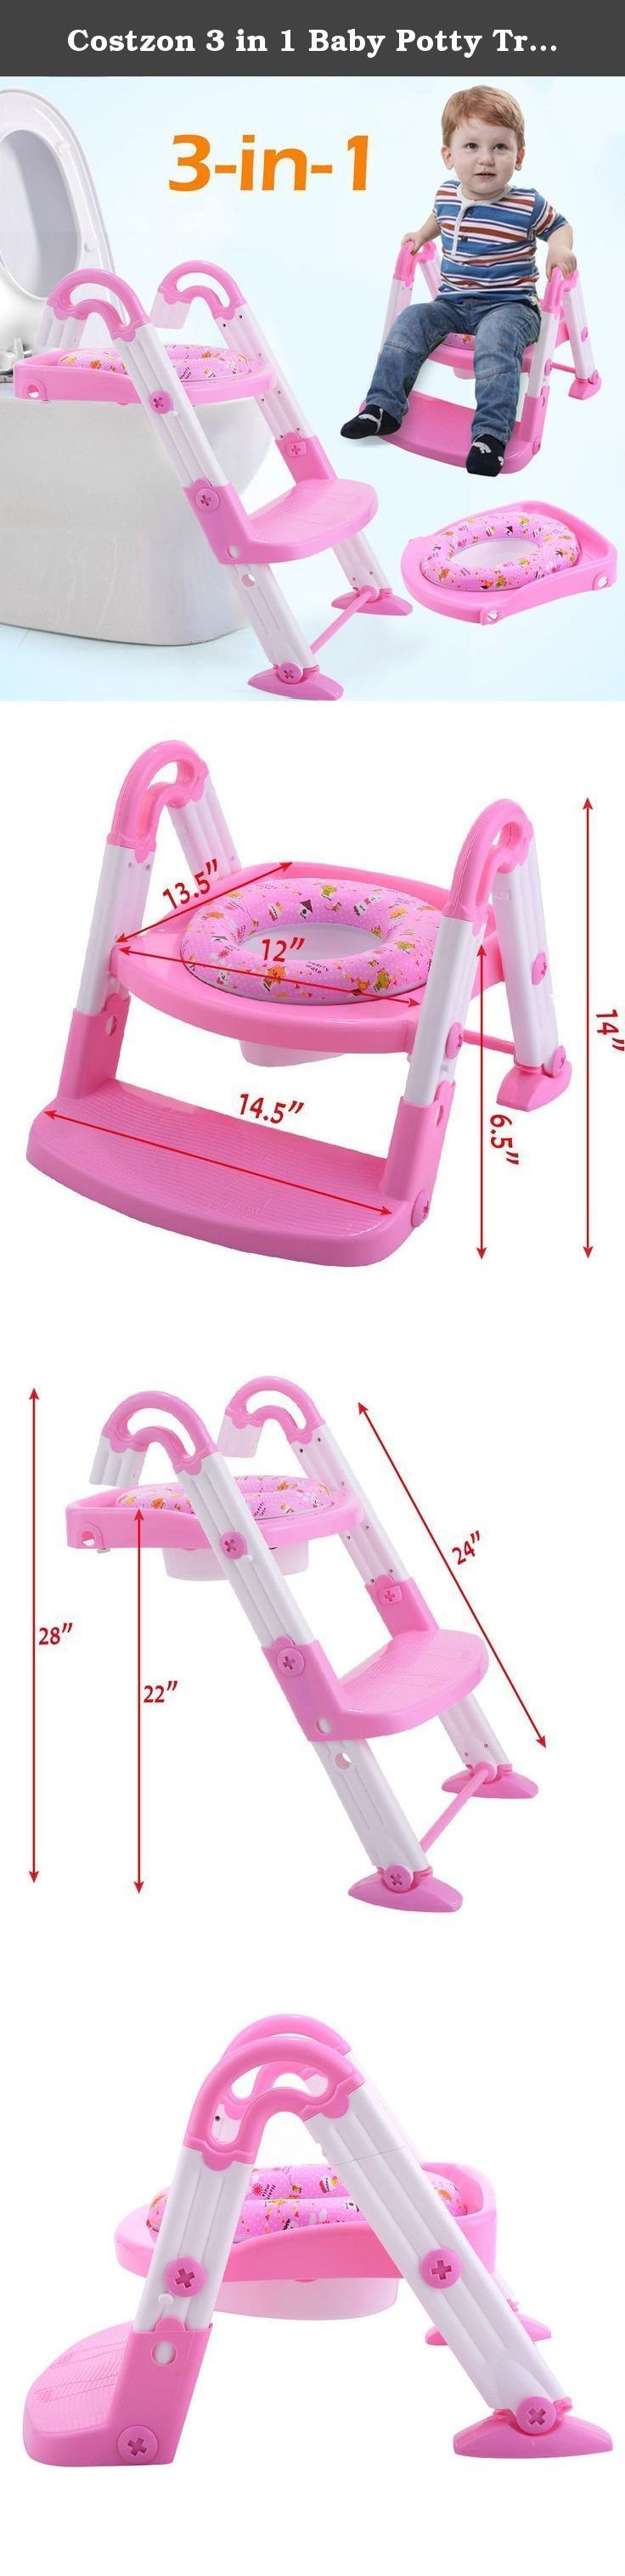 Costzon 3 in 1 Baby Potty Training Seat Toddler Toilet Step Trainer Non-Slip Ladder (Pink). Feature Helps child become independent while toilet training A self standing potty seat for toilets that is designed with bright and cheerful colors and will encourage your toddler to want to use their potty seat every day. Made with skid proof, non slip materials Made to use on-the-toilet with a built-in step stool, and a comfortable, toddler toilet seat insert. Made of easy-to-clean polypropylene...